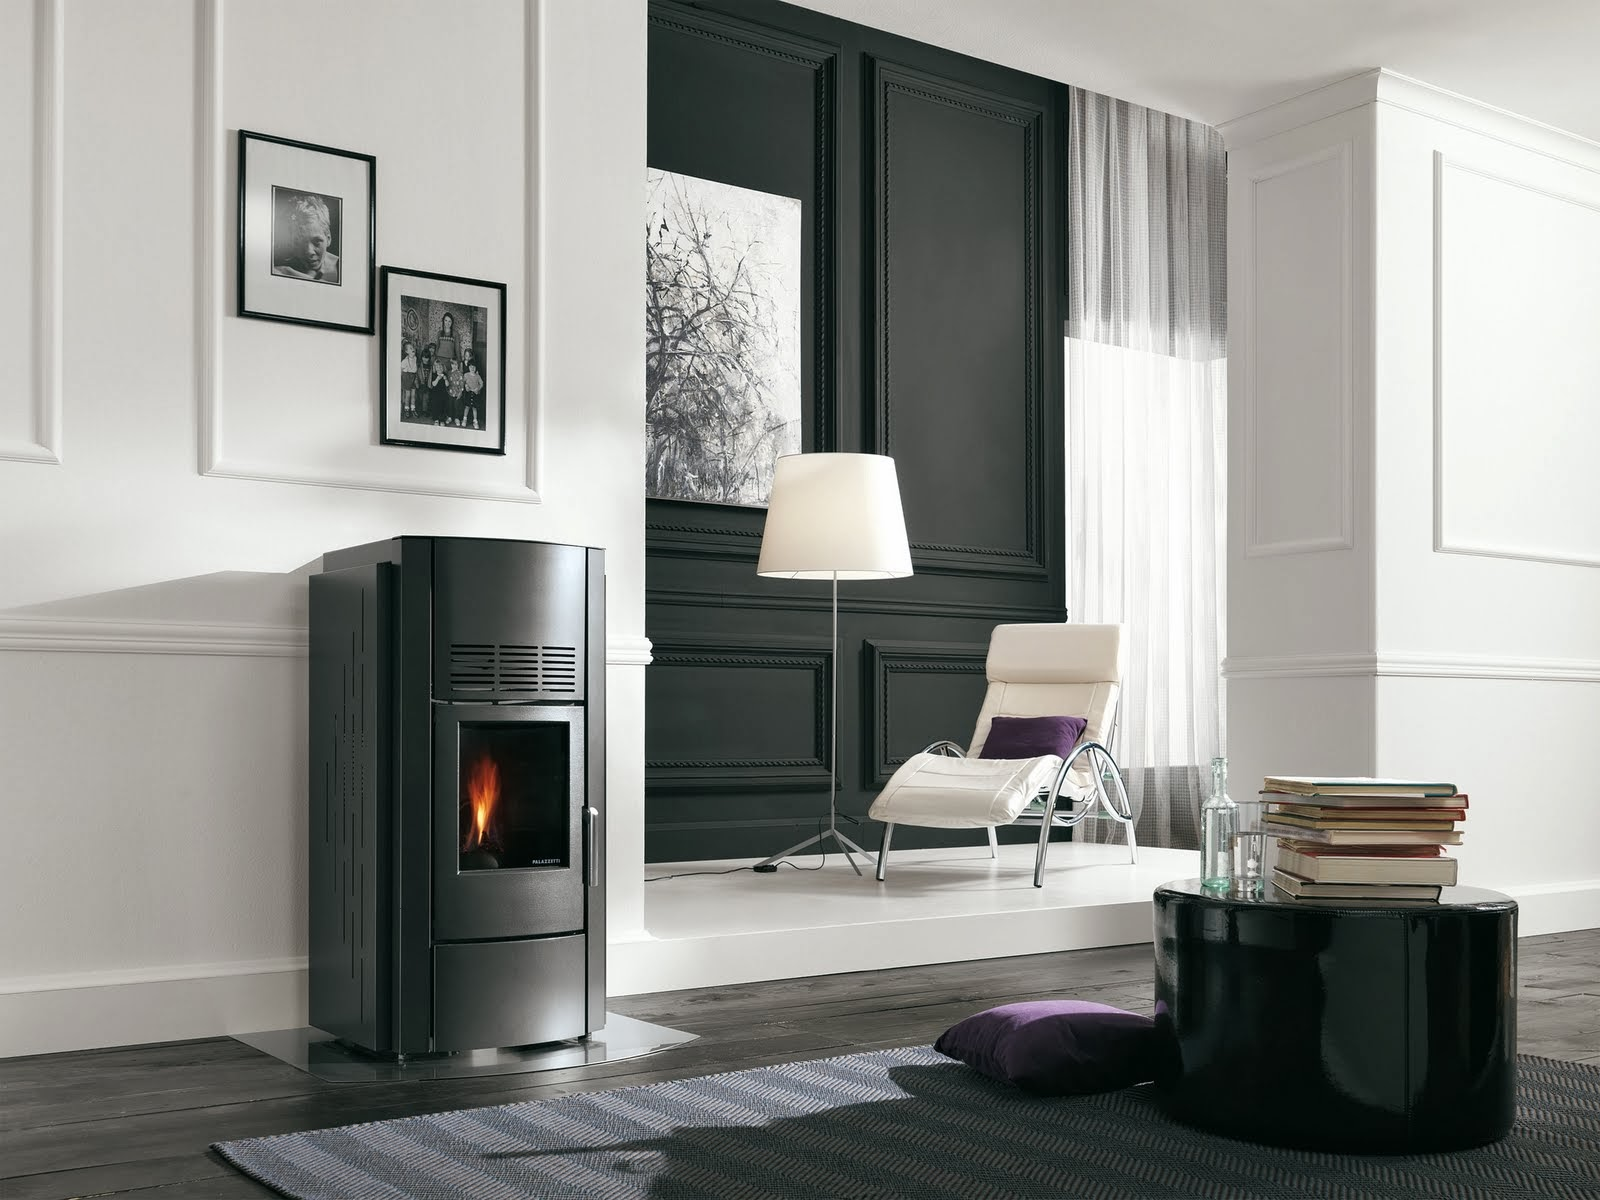 palazzetti po le granul s bois combustion tanche elyotherm. Black Bedroom Furniture Sets. Home Design Ideas